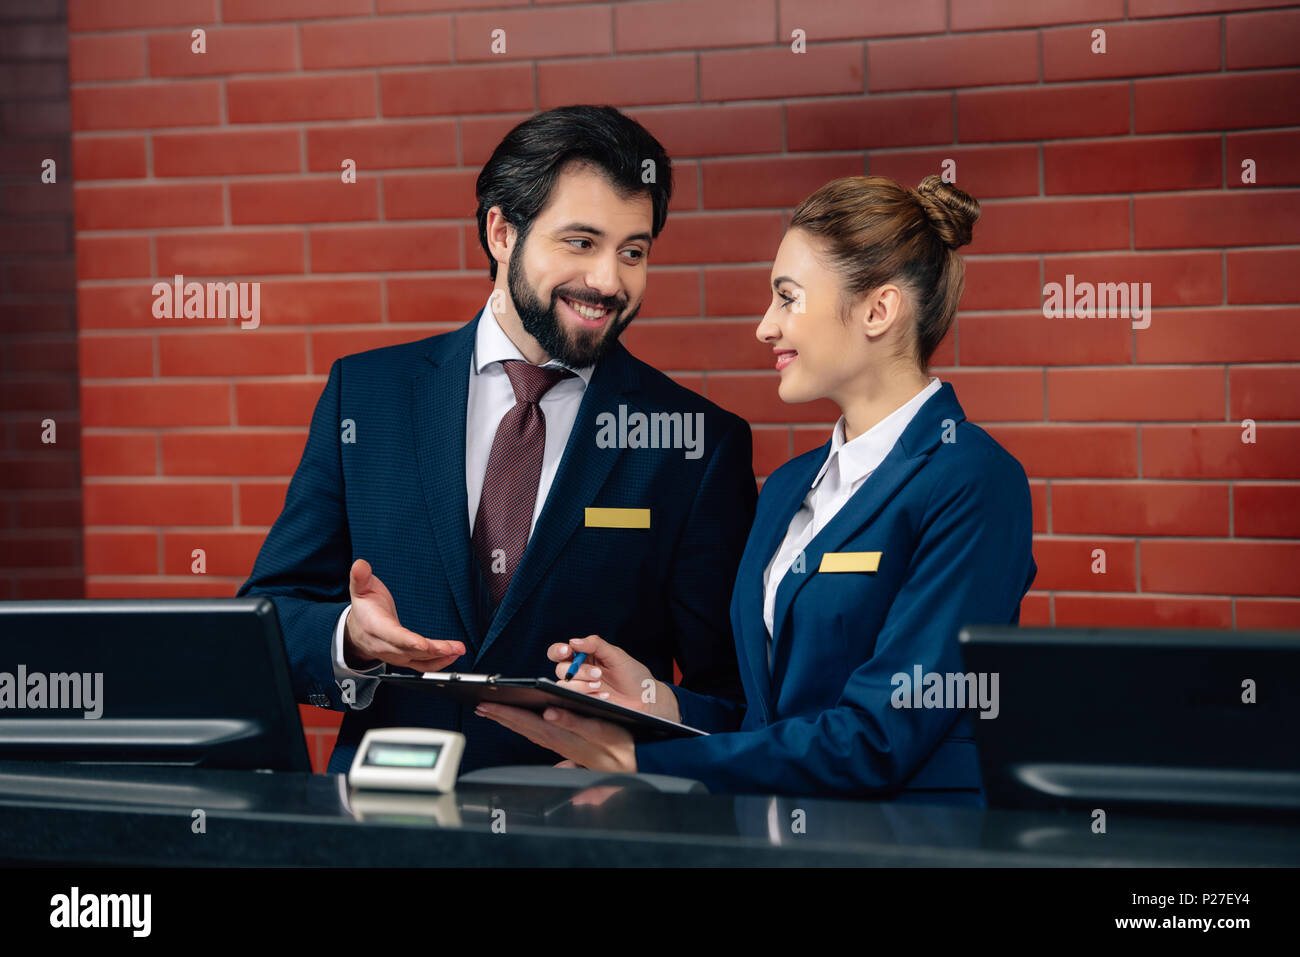 smiling hotel receptionists working together at counter - Stock Image